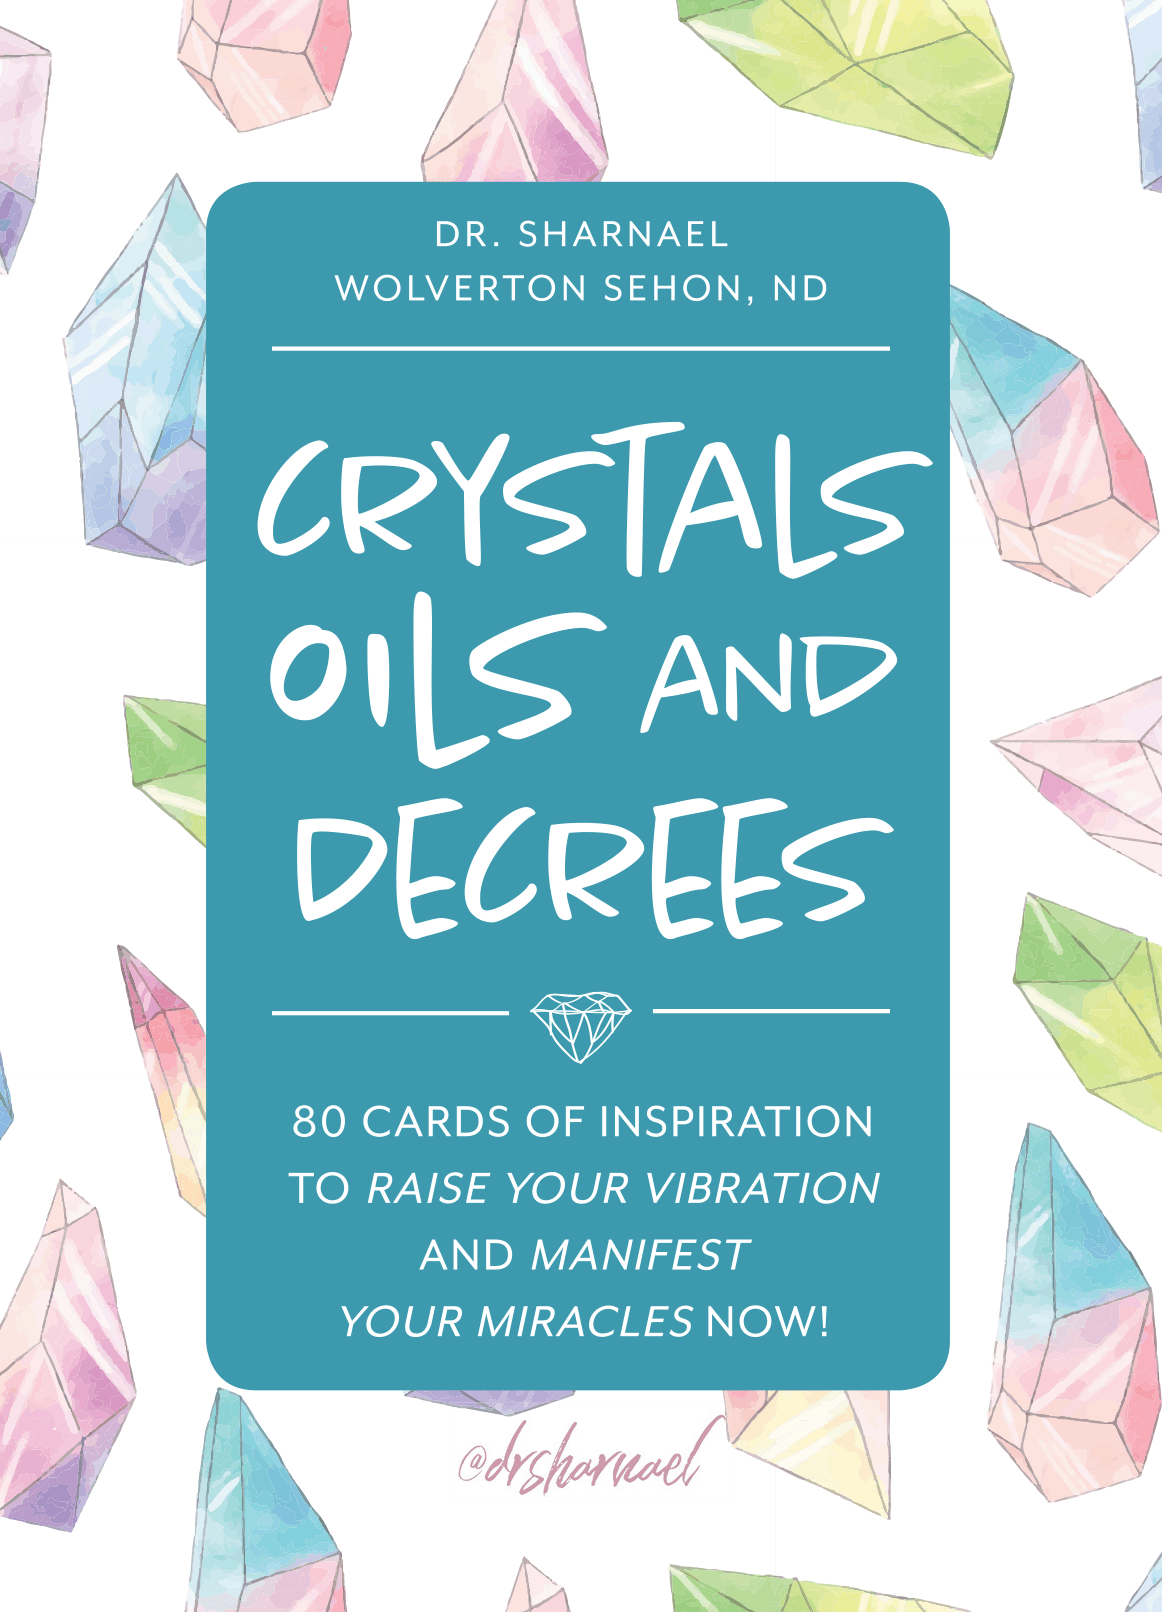 (PRE-SALE) Crystals, Oils, and Decrees card deck